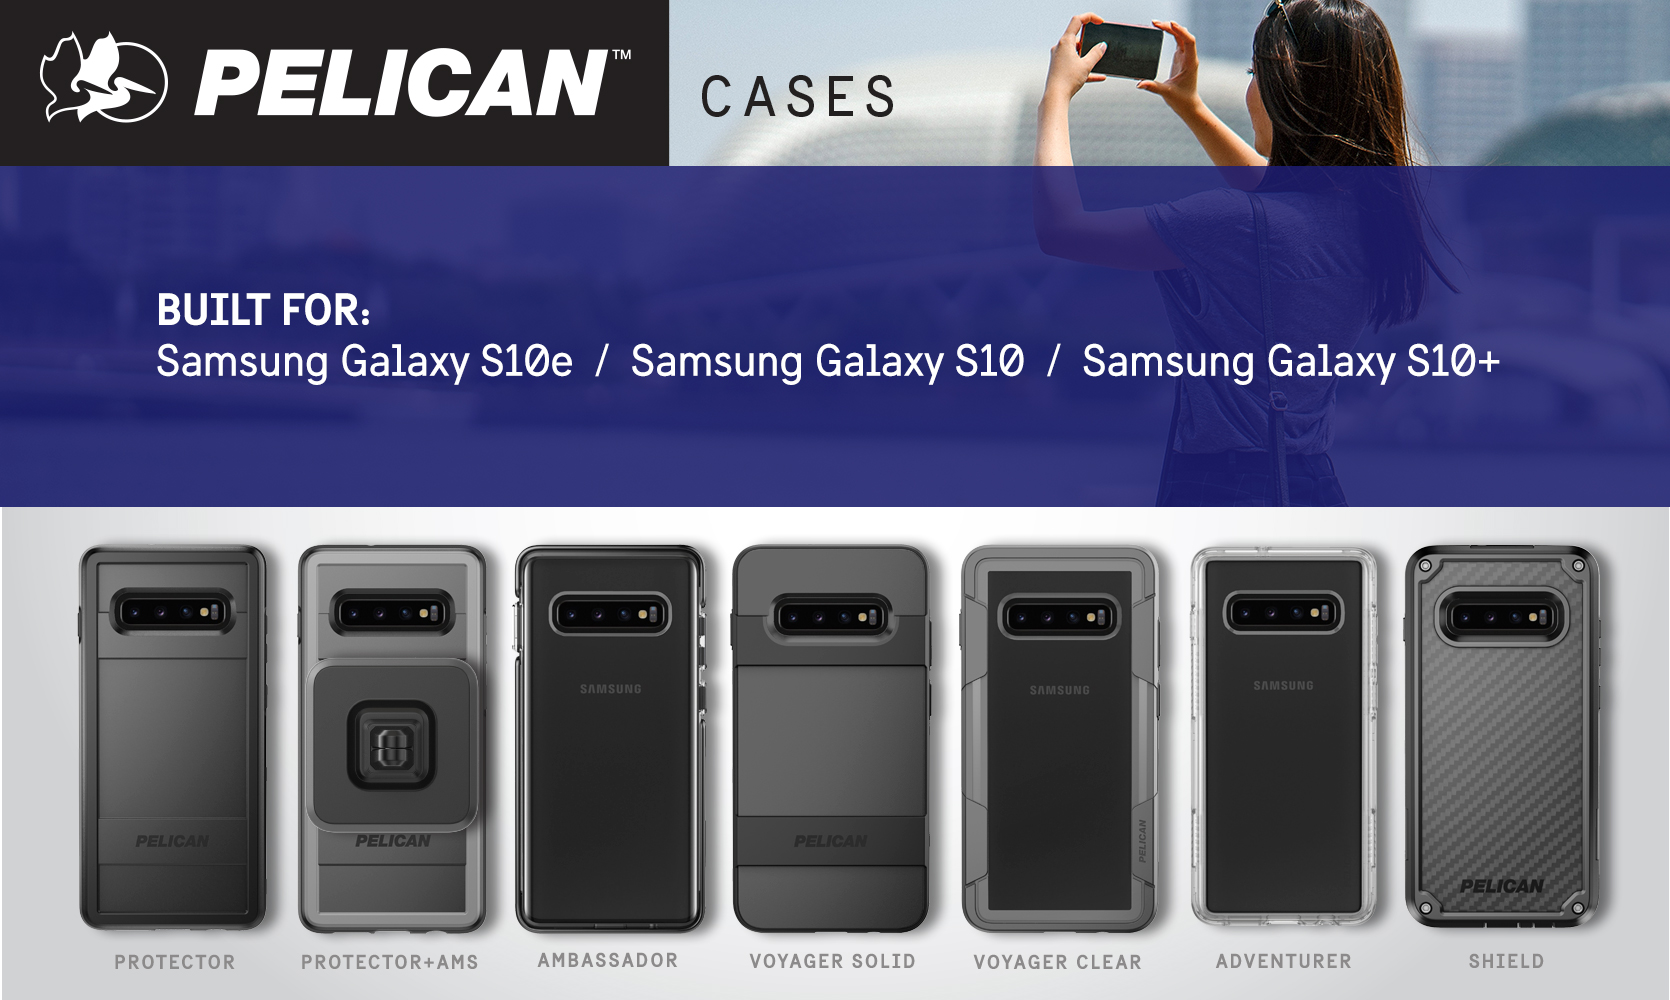 Pelican Launches Six Durable Phone Cases For Latest Samsung